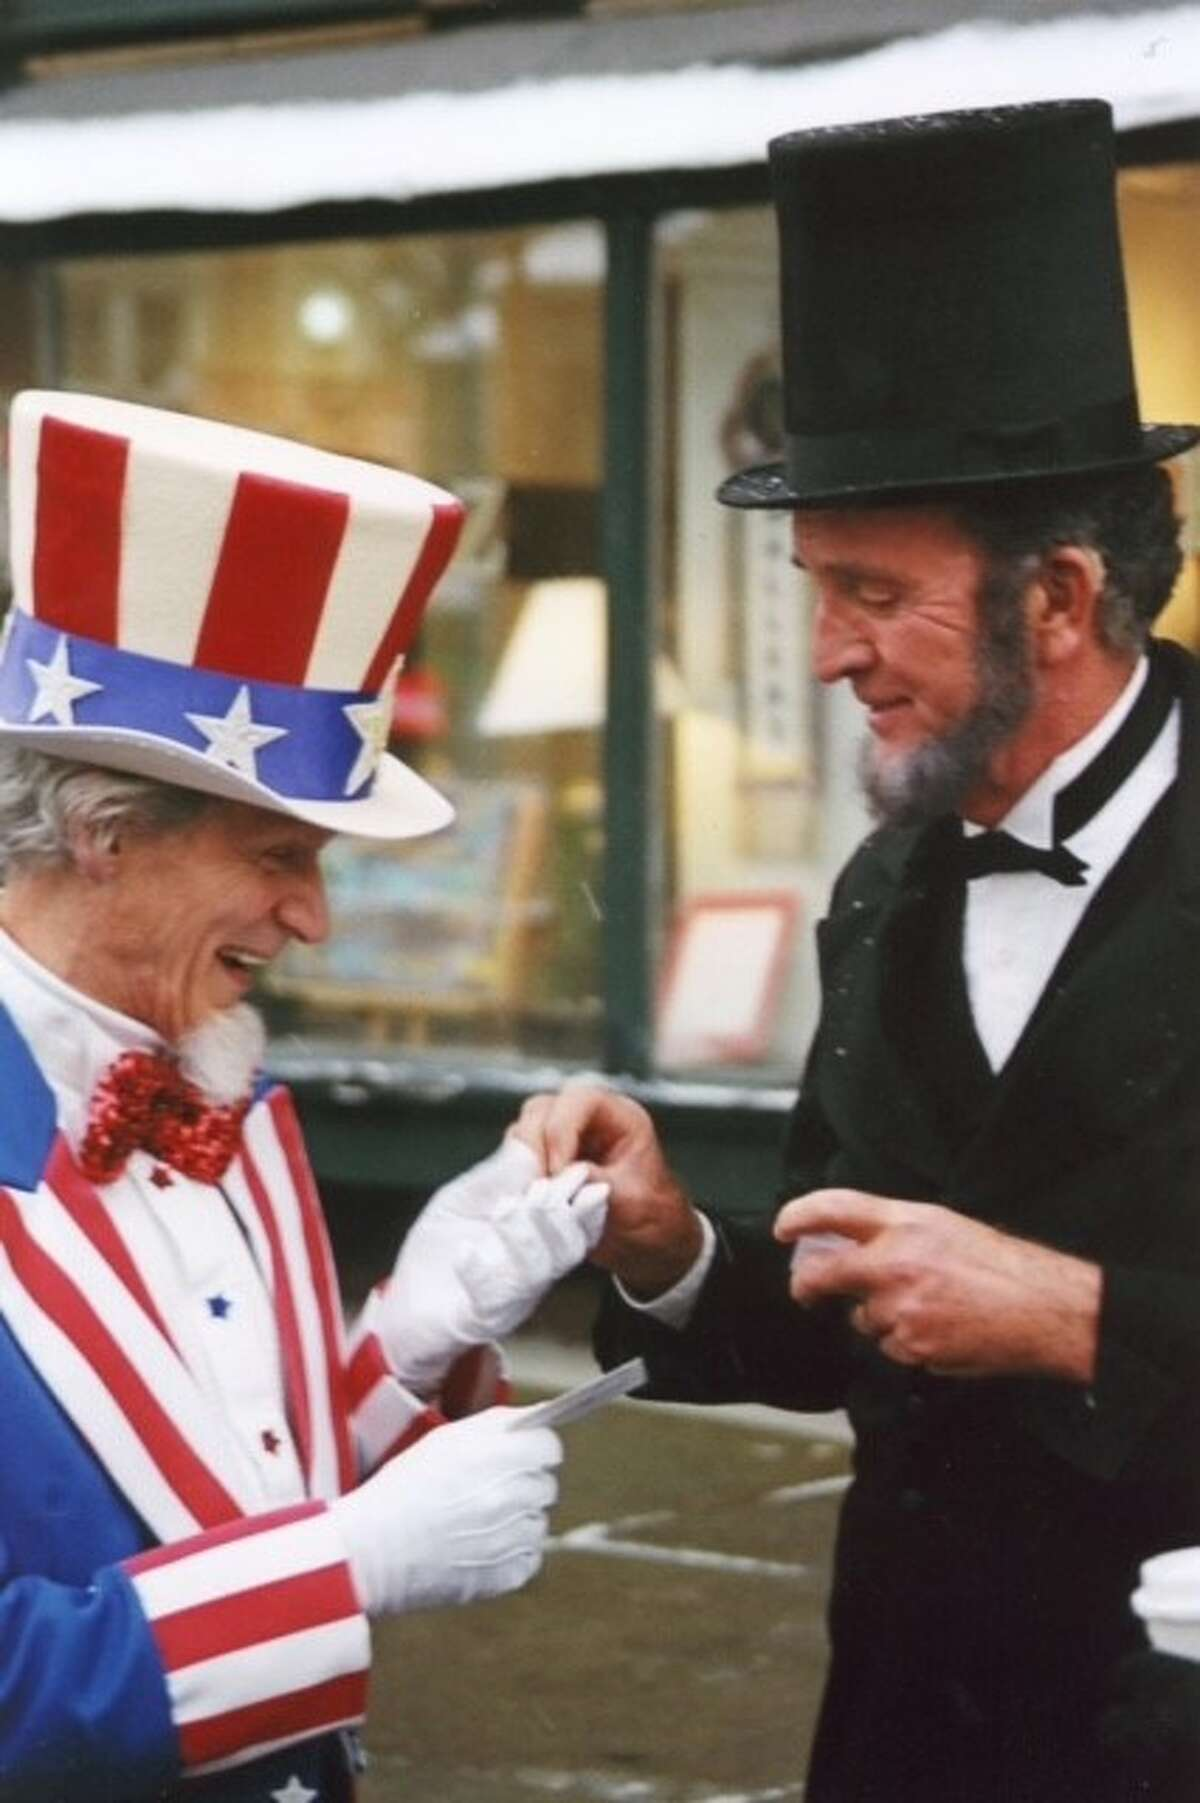 Tim Ball of Scotia caught this shot at the Troy Victorian Stroll many years ago, but it is still one of my favorites.The gentlemen were working the event independently but came upon each other, I believe, for the first time. Ironically, considering the event, they are in the process of exchanging business cards.